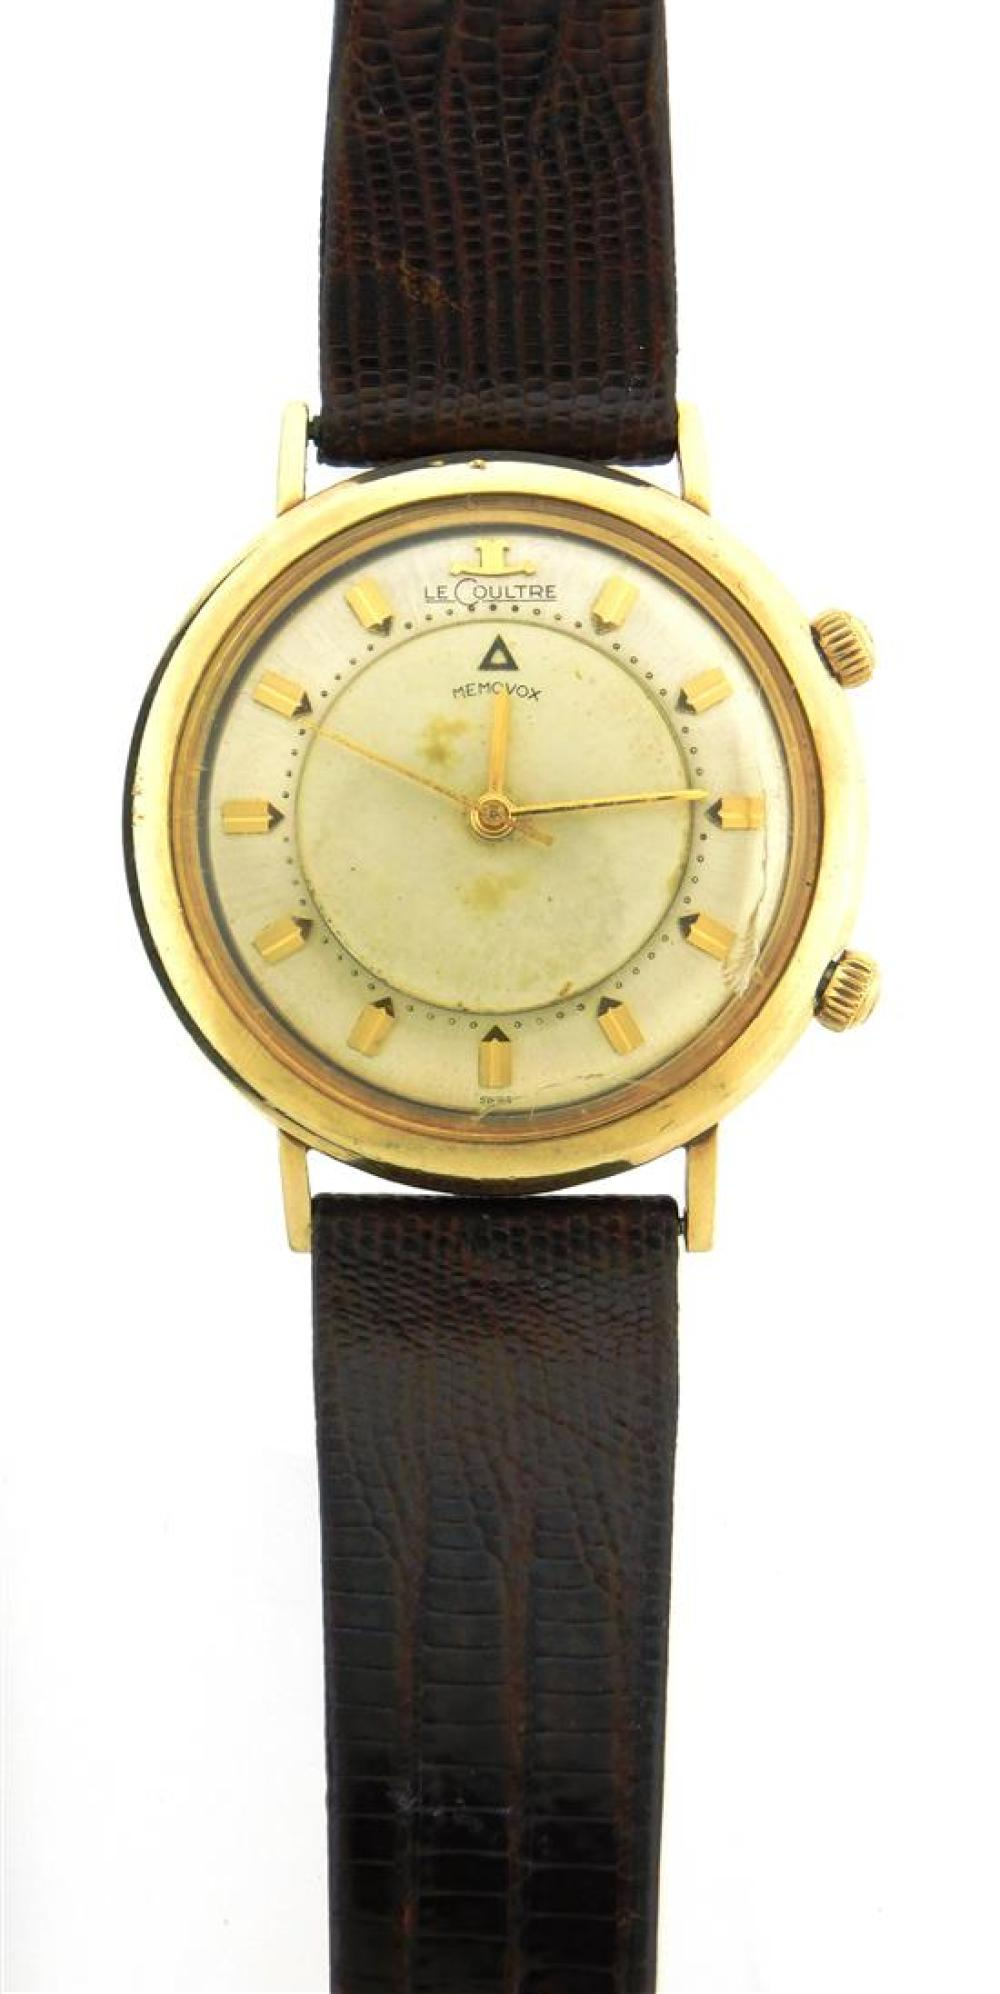 """JEWELRY: Gentleman's LeCoultre Memovox Wristwatch, 10K gold-filled, manual wind movement with alarm function, case stamped """"10K Gold.."""